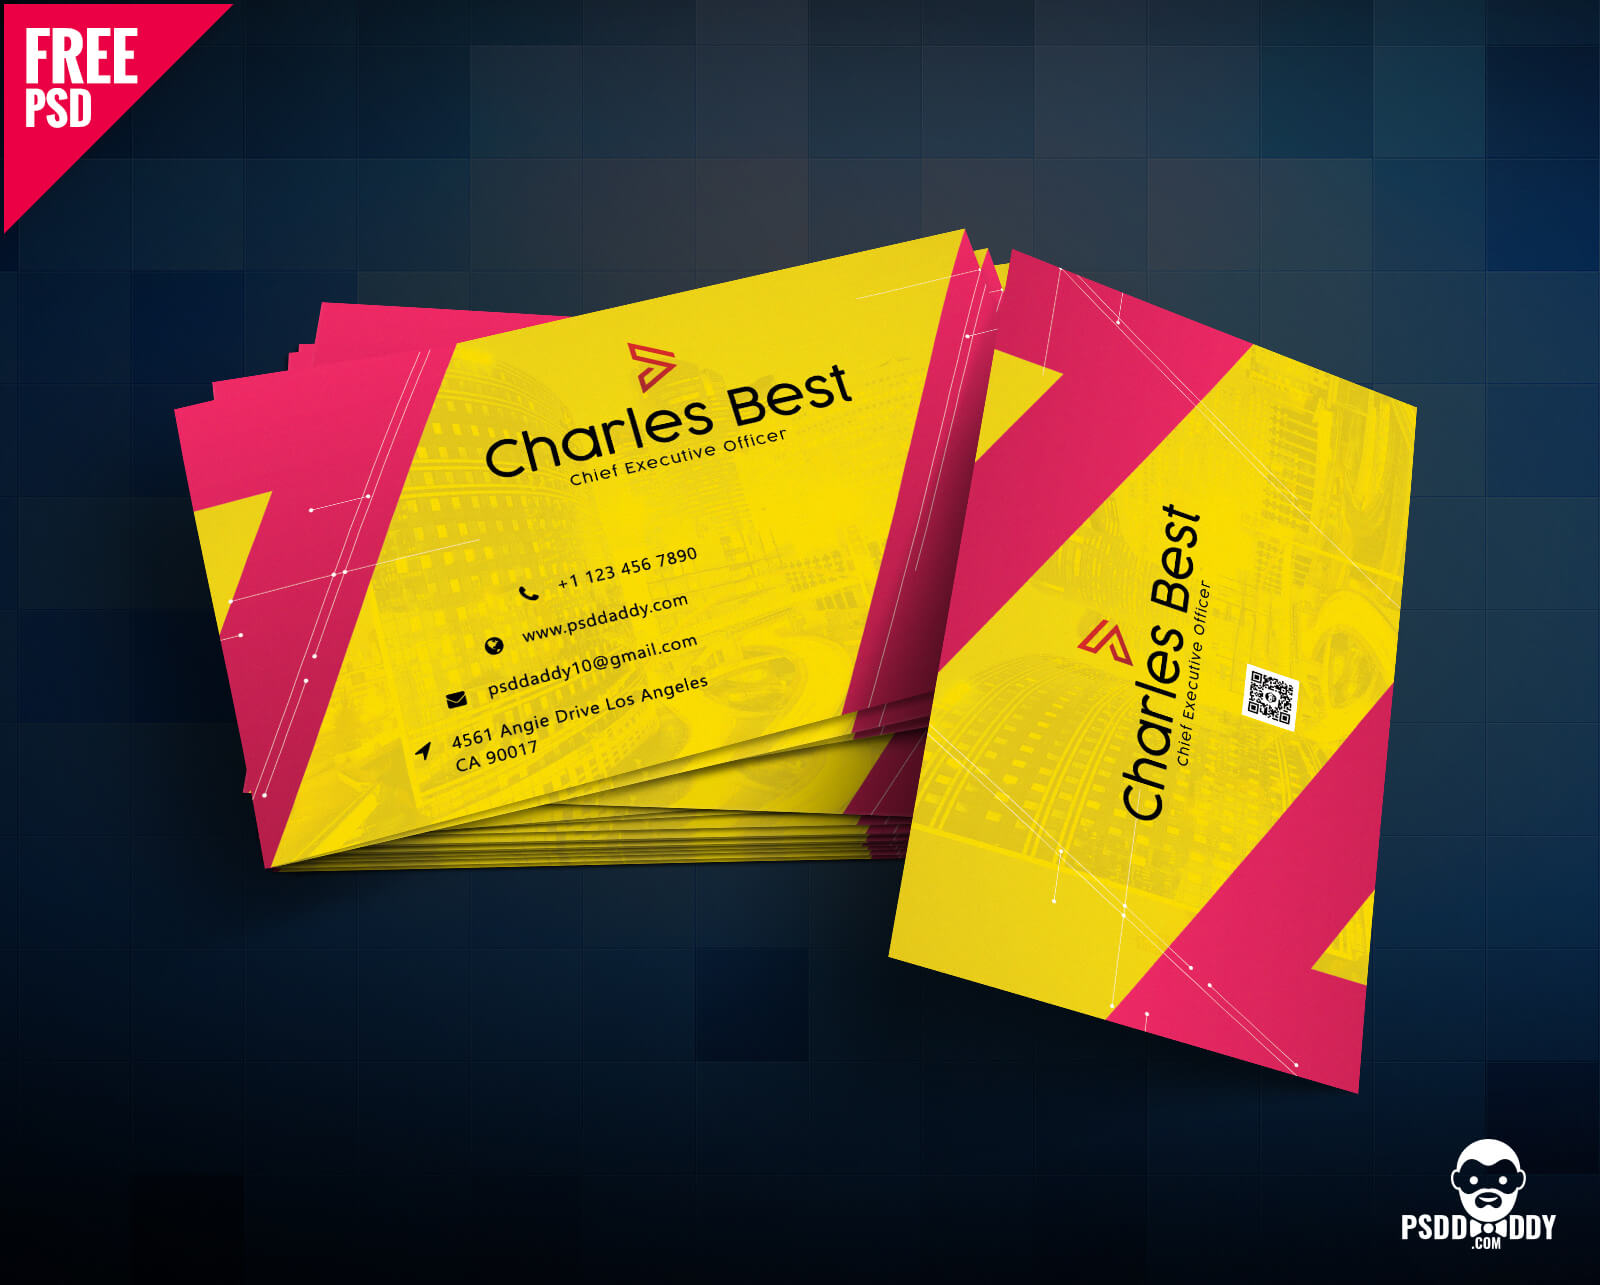 Download] Creative Business Card Free Psd | Psddaddy For Photoshop Name Card Template